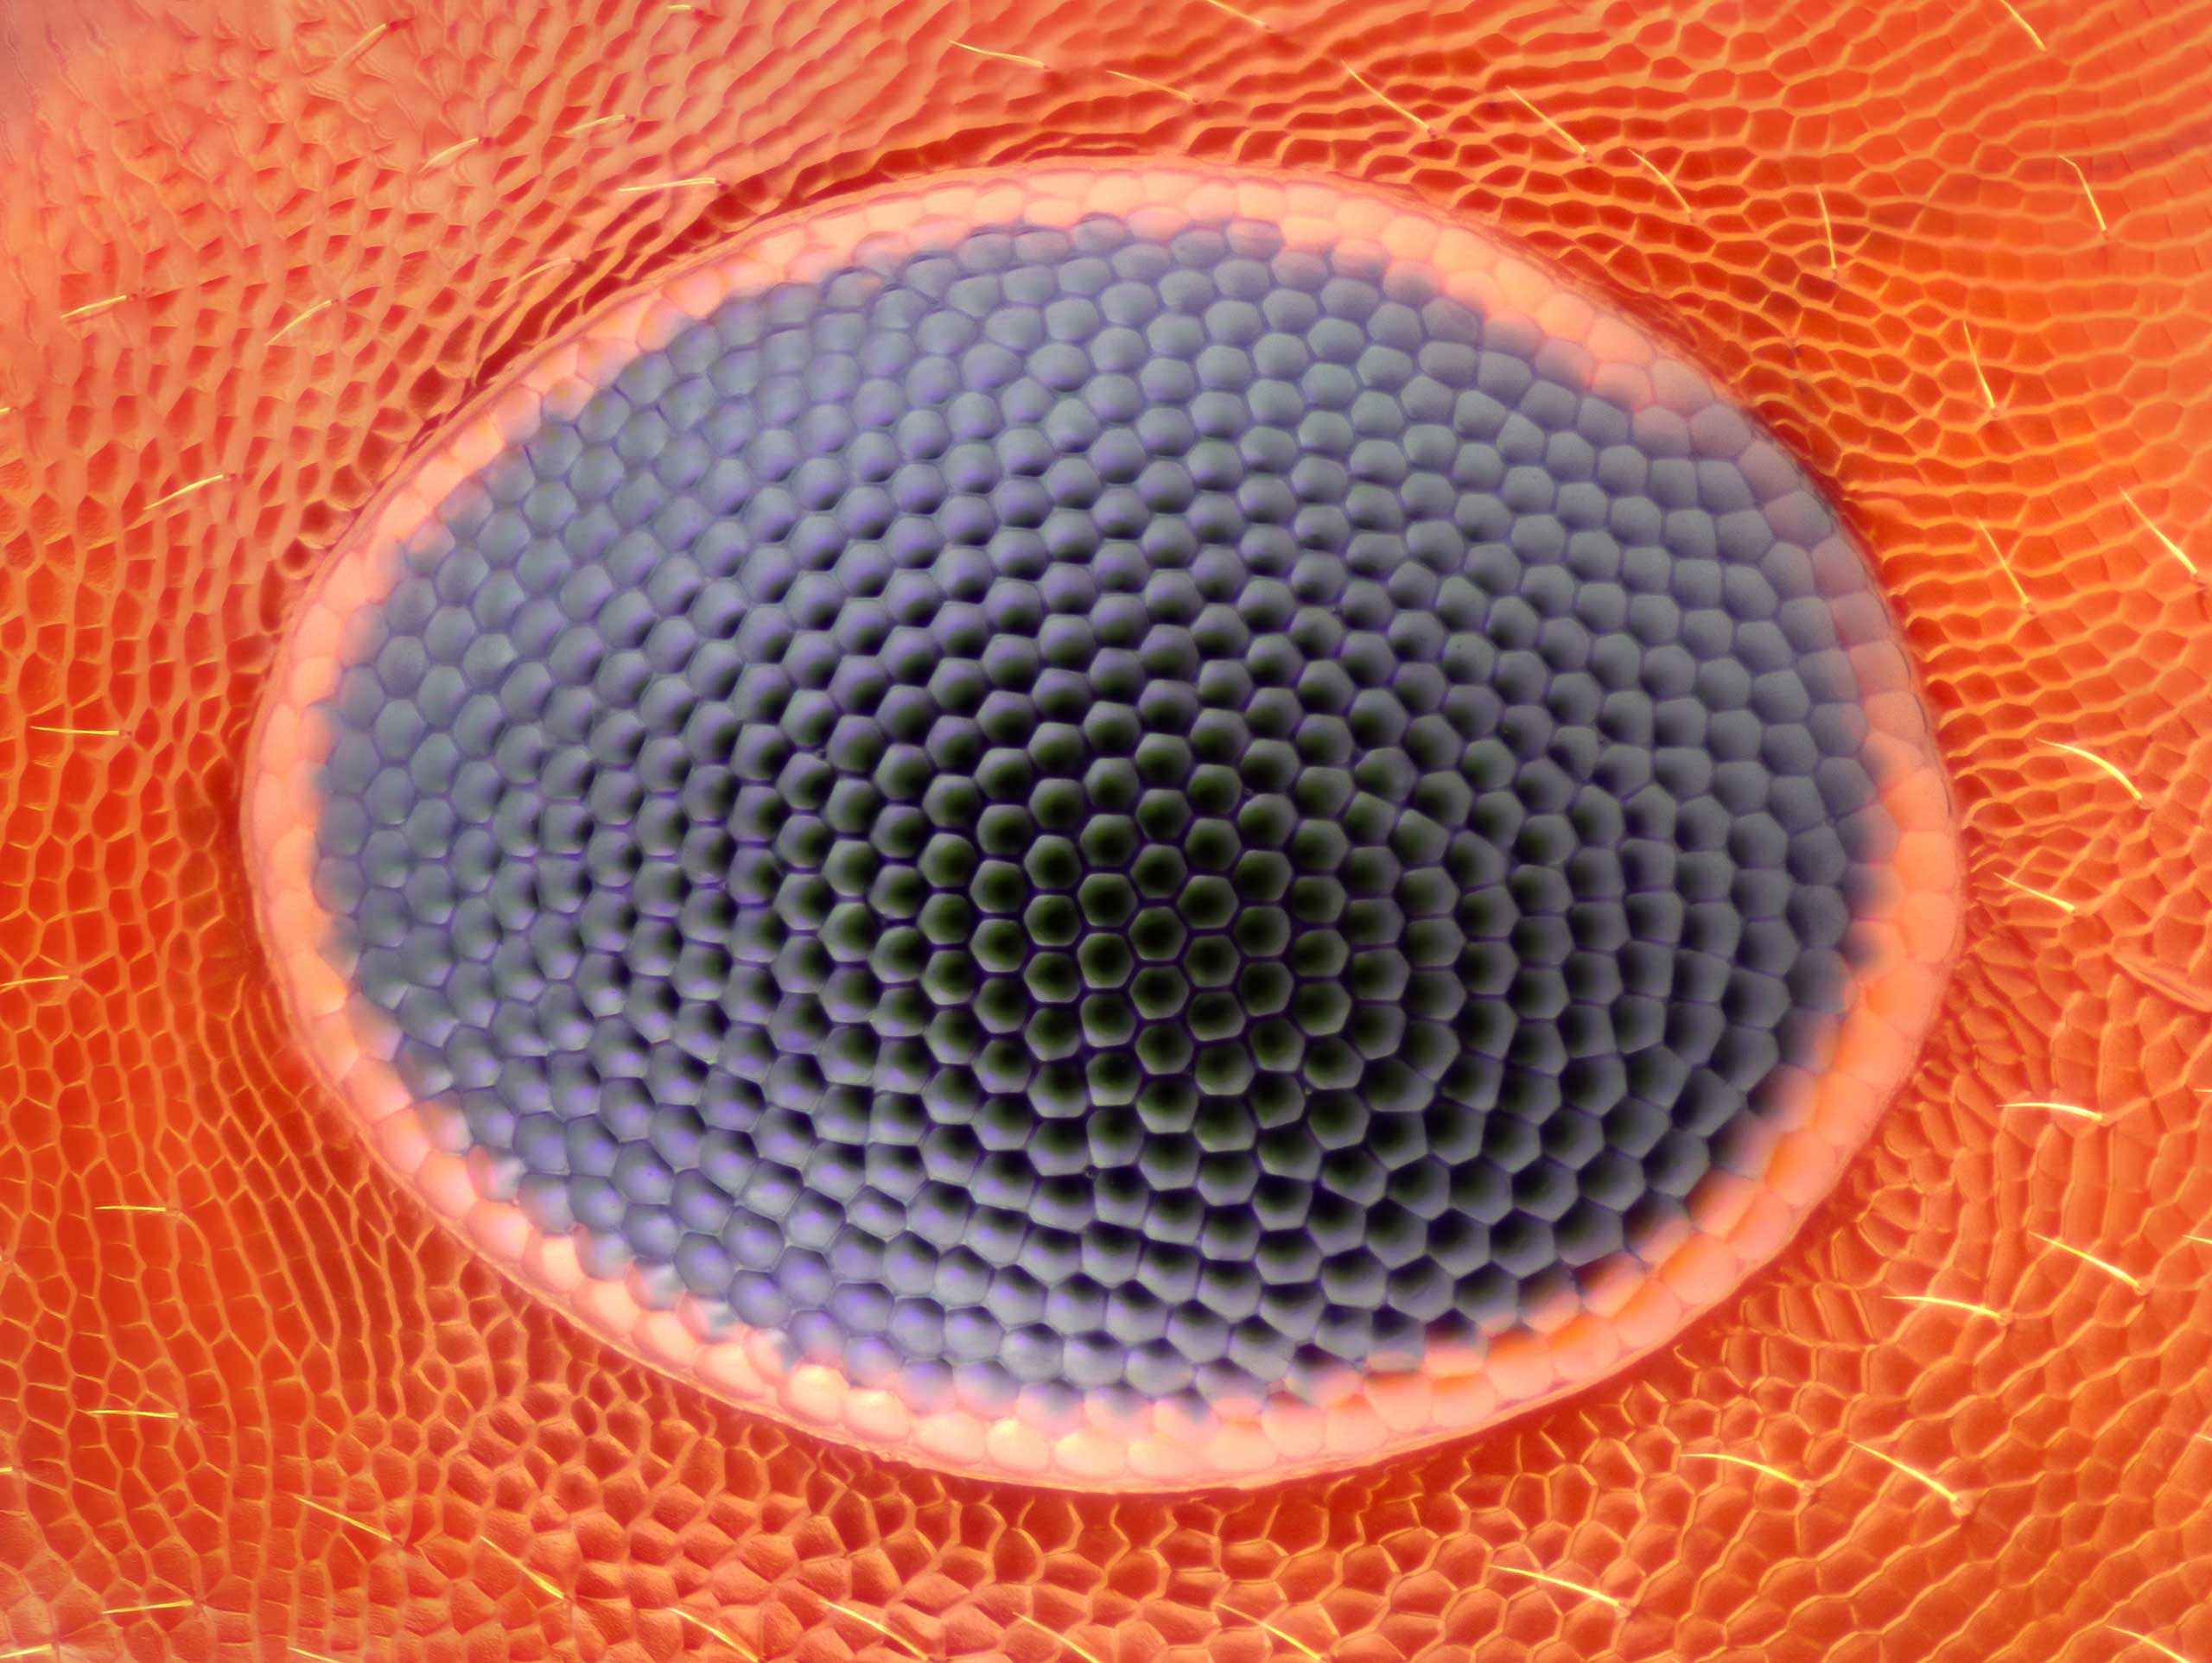 An ant eye at 20x magnification.